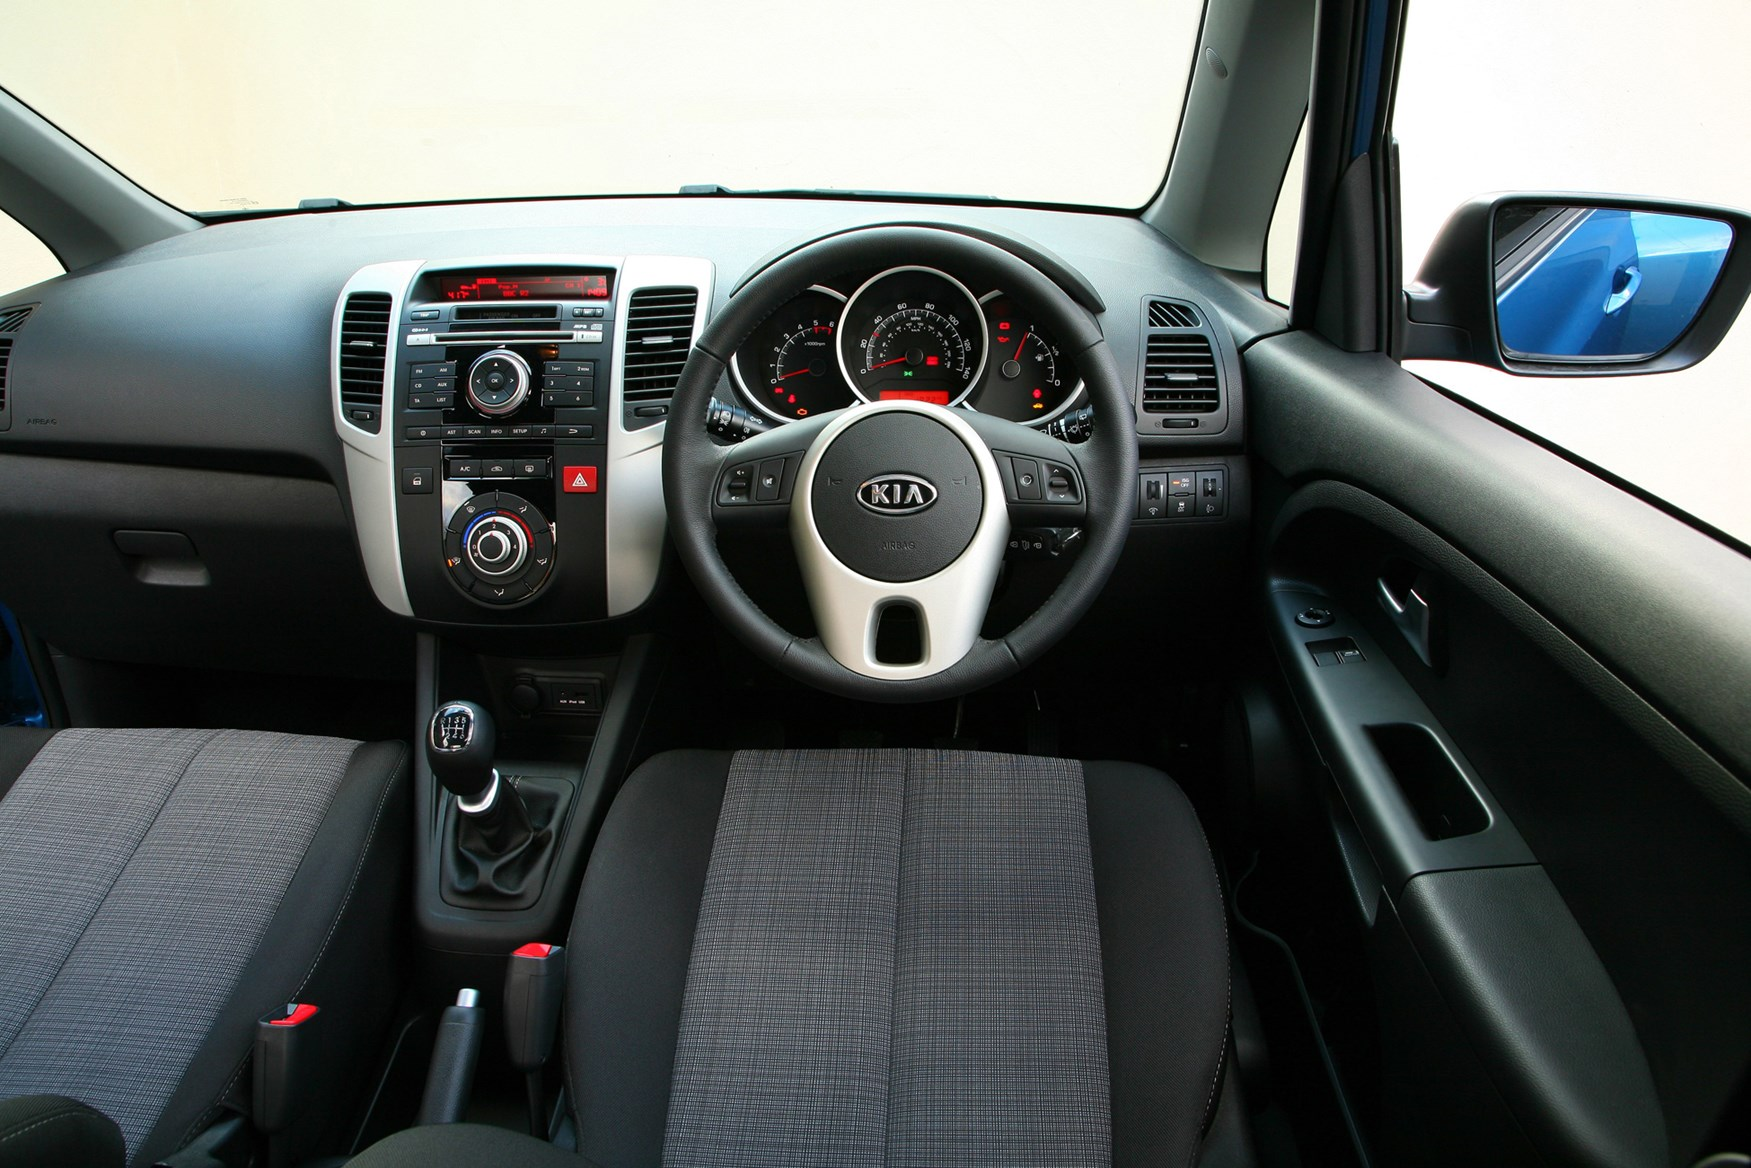 adorable-design-of-the-silver-and-black-steering-added-with-black-dash-as-the-kia-venga-2015-interior-ideas